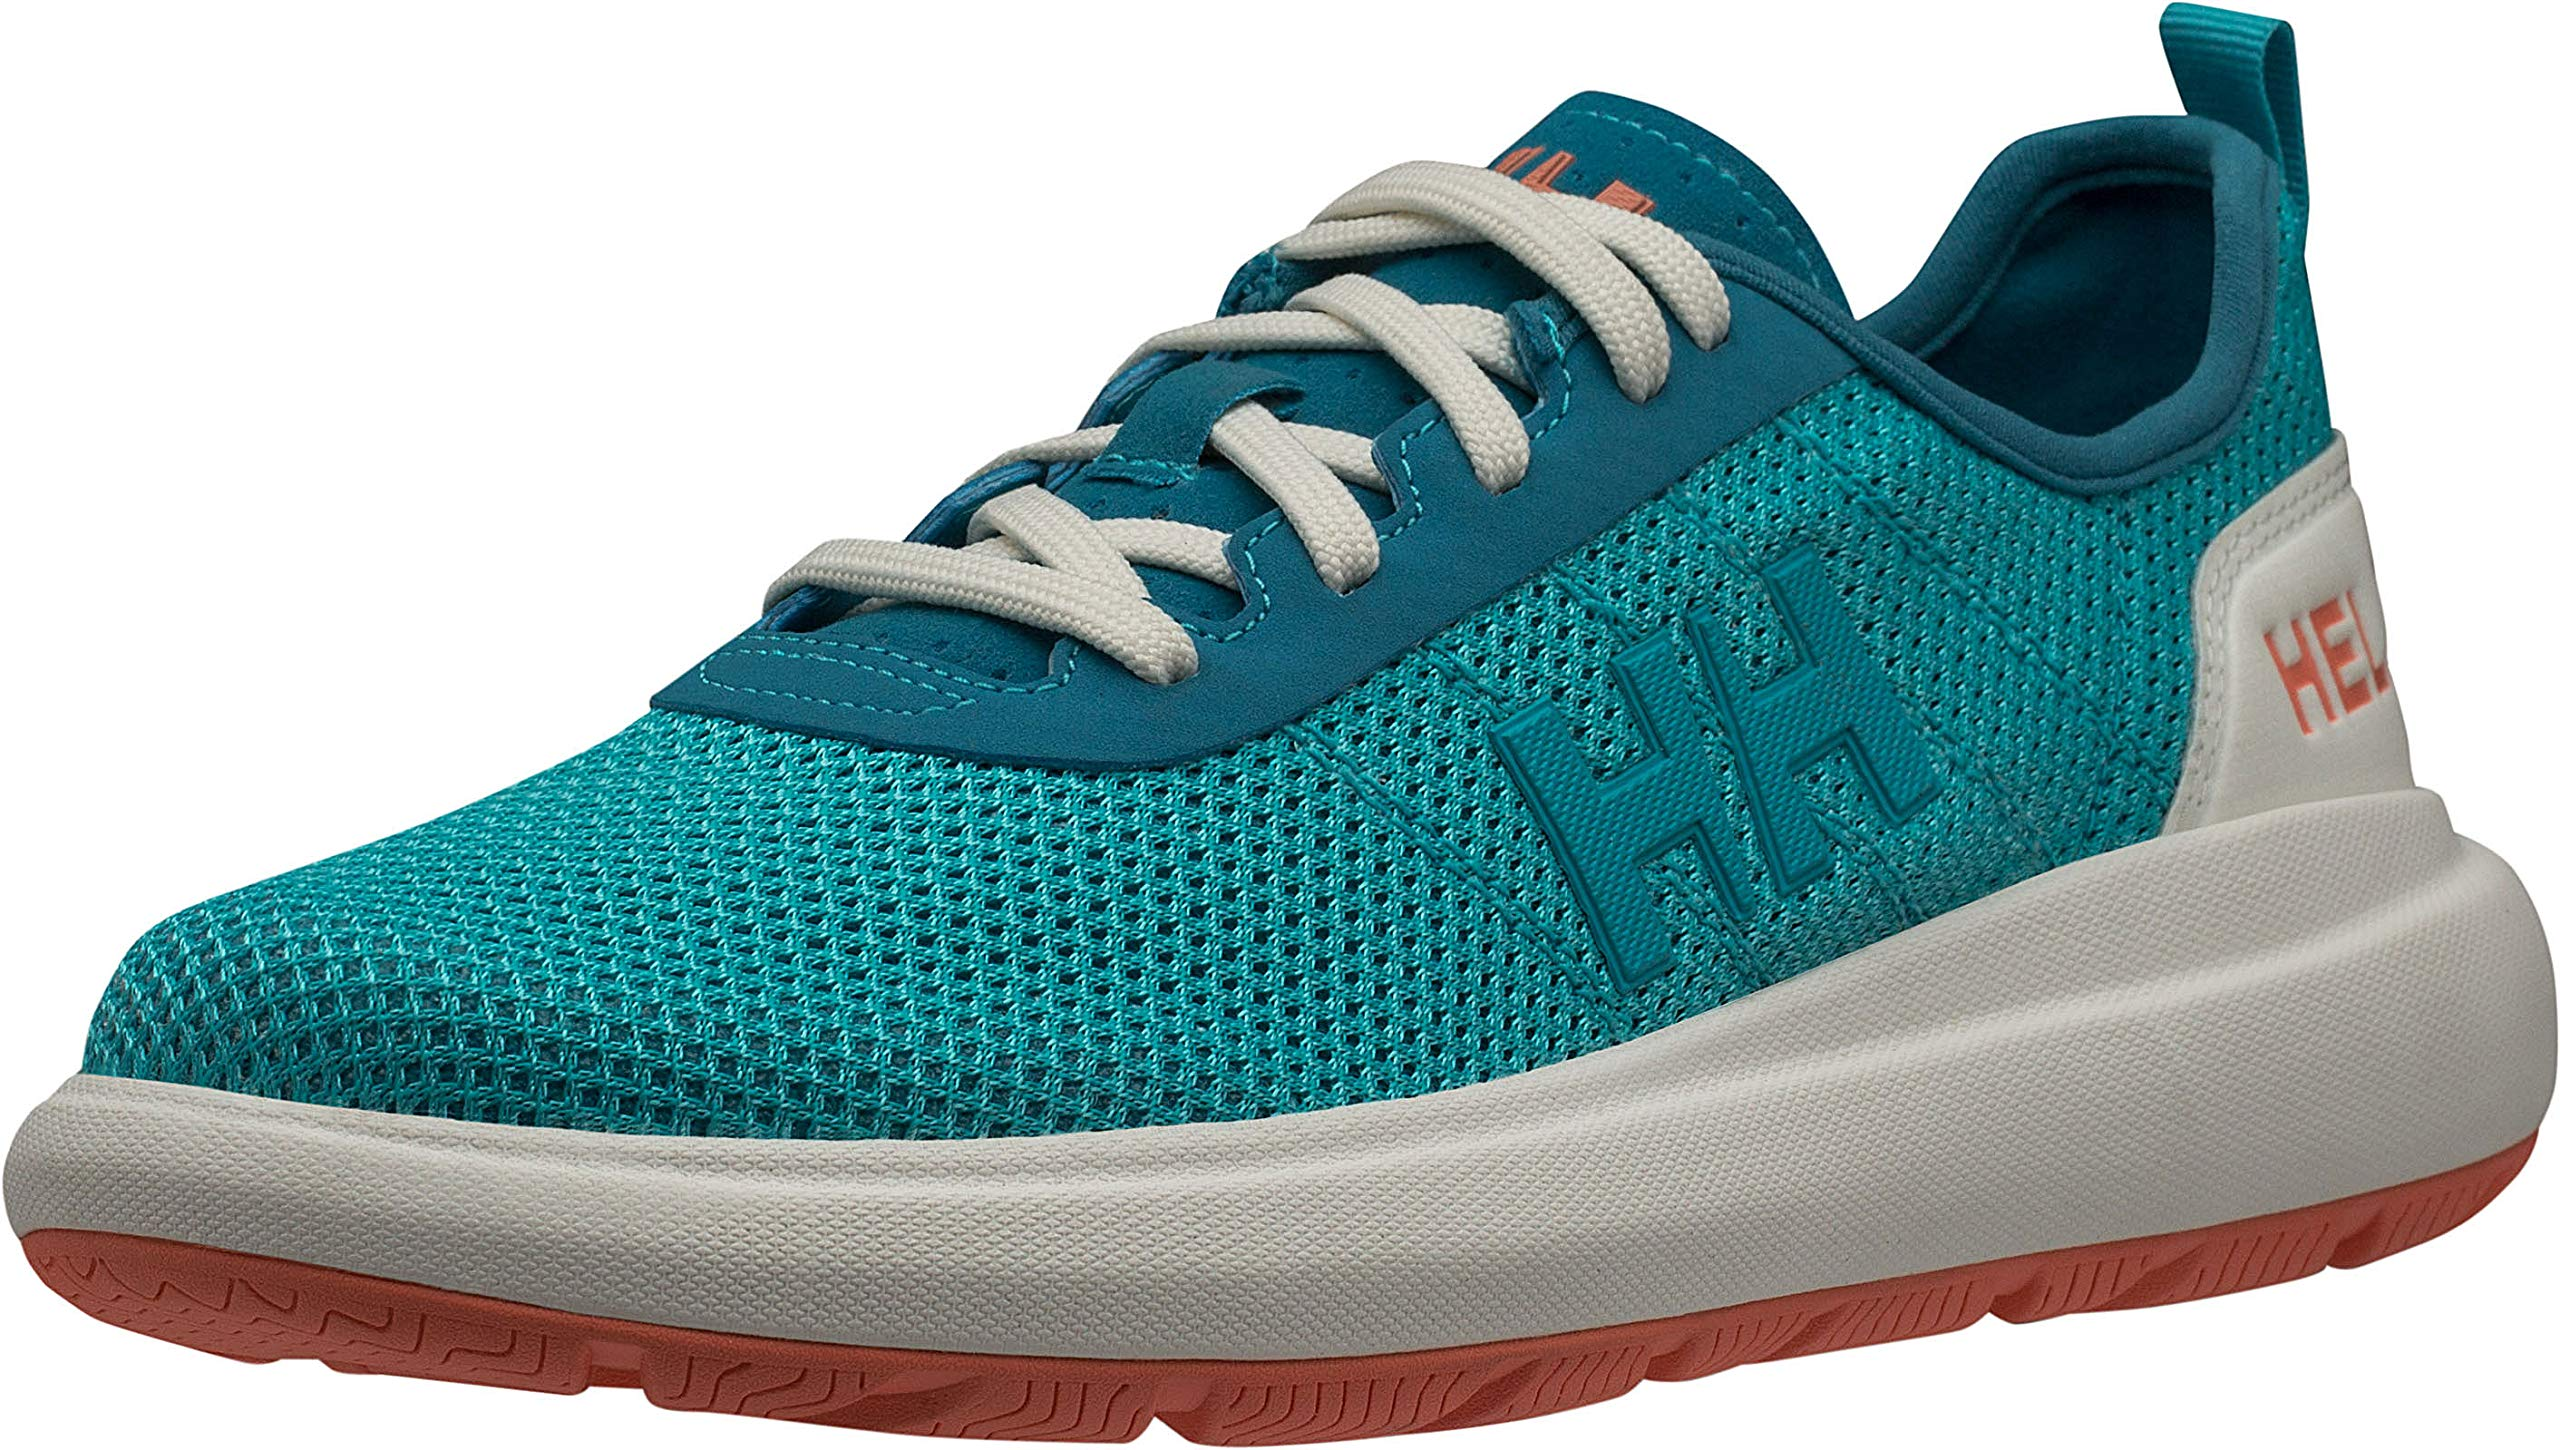 Helly Hansen Women's Spindrift Sailing Deck Shoe, Aqua Marine/Fusion Coral/Off White, 7.5 by Helly Hansen